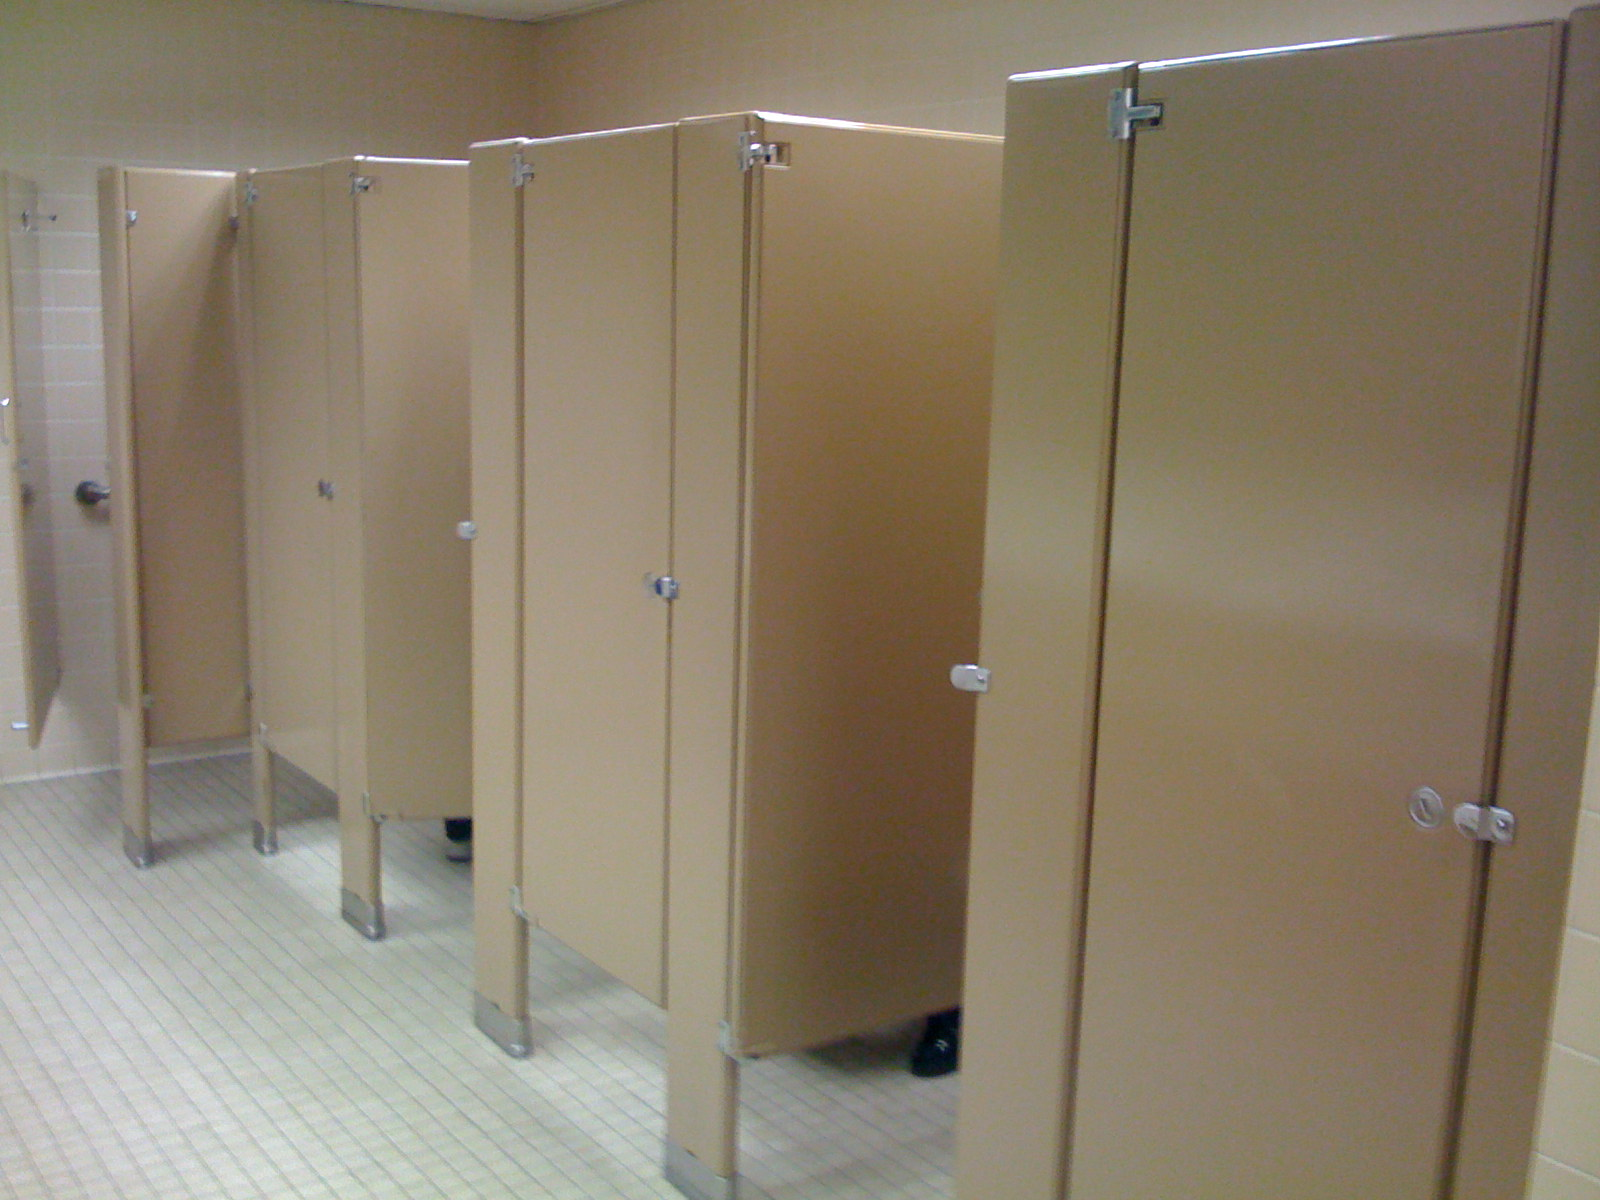 3 American toilet things to hate - Life and its little pleasures